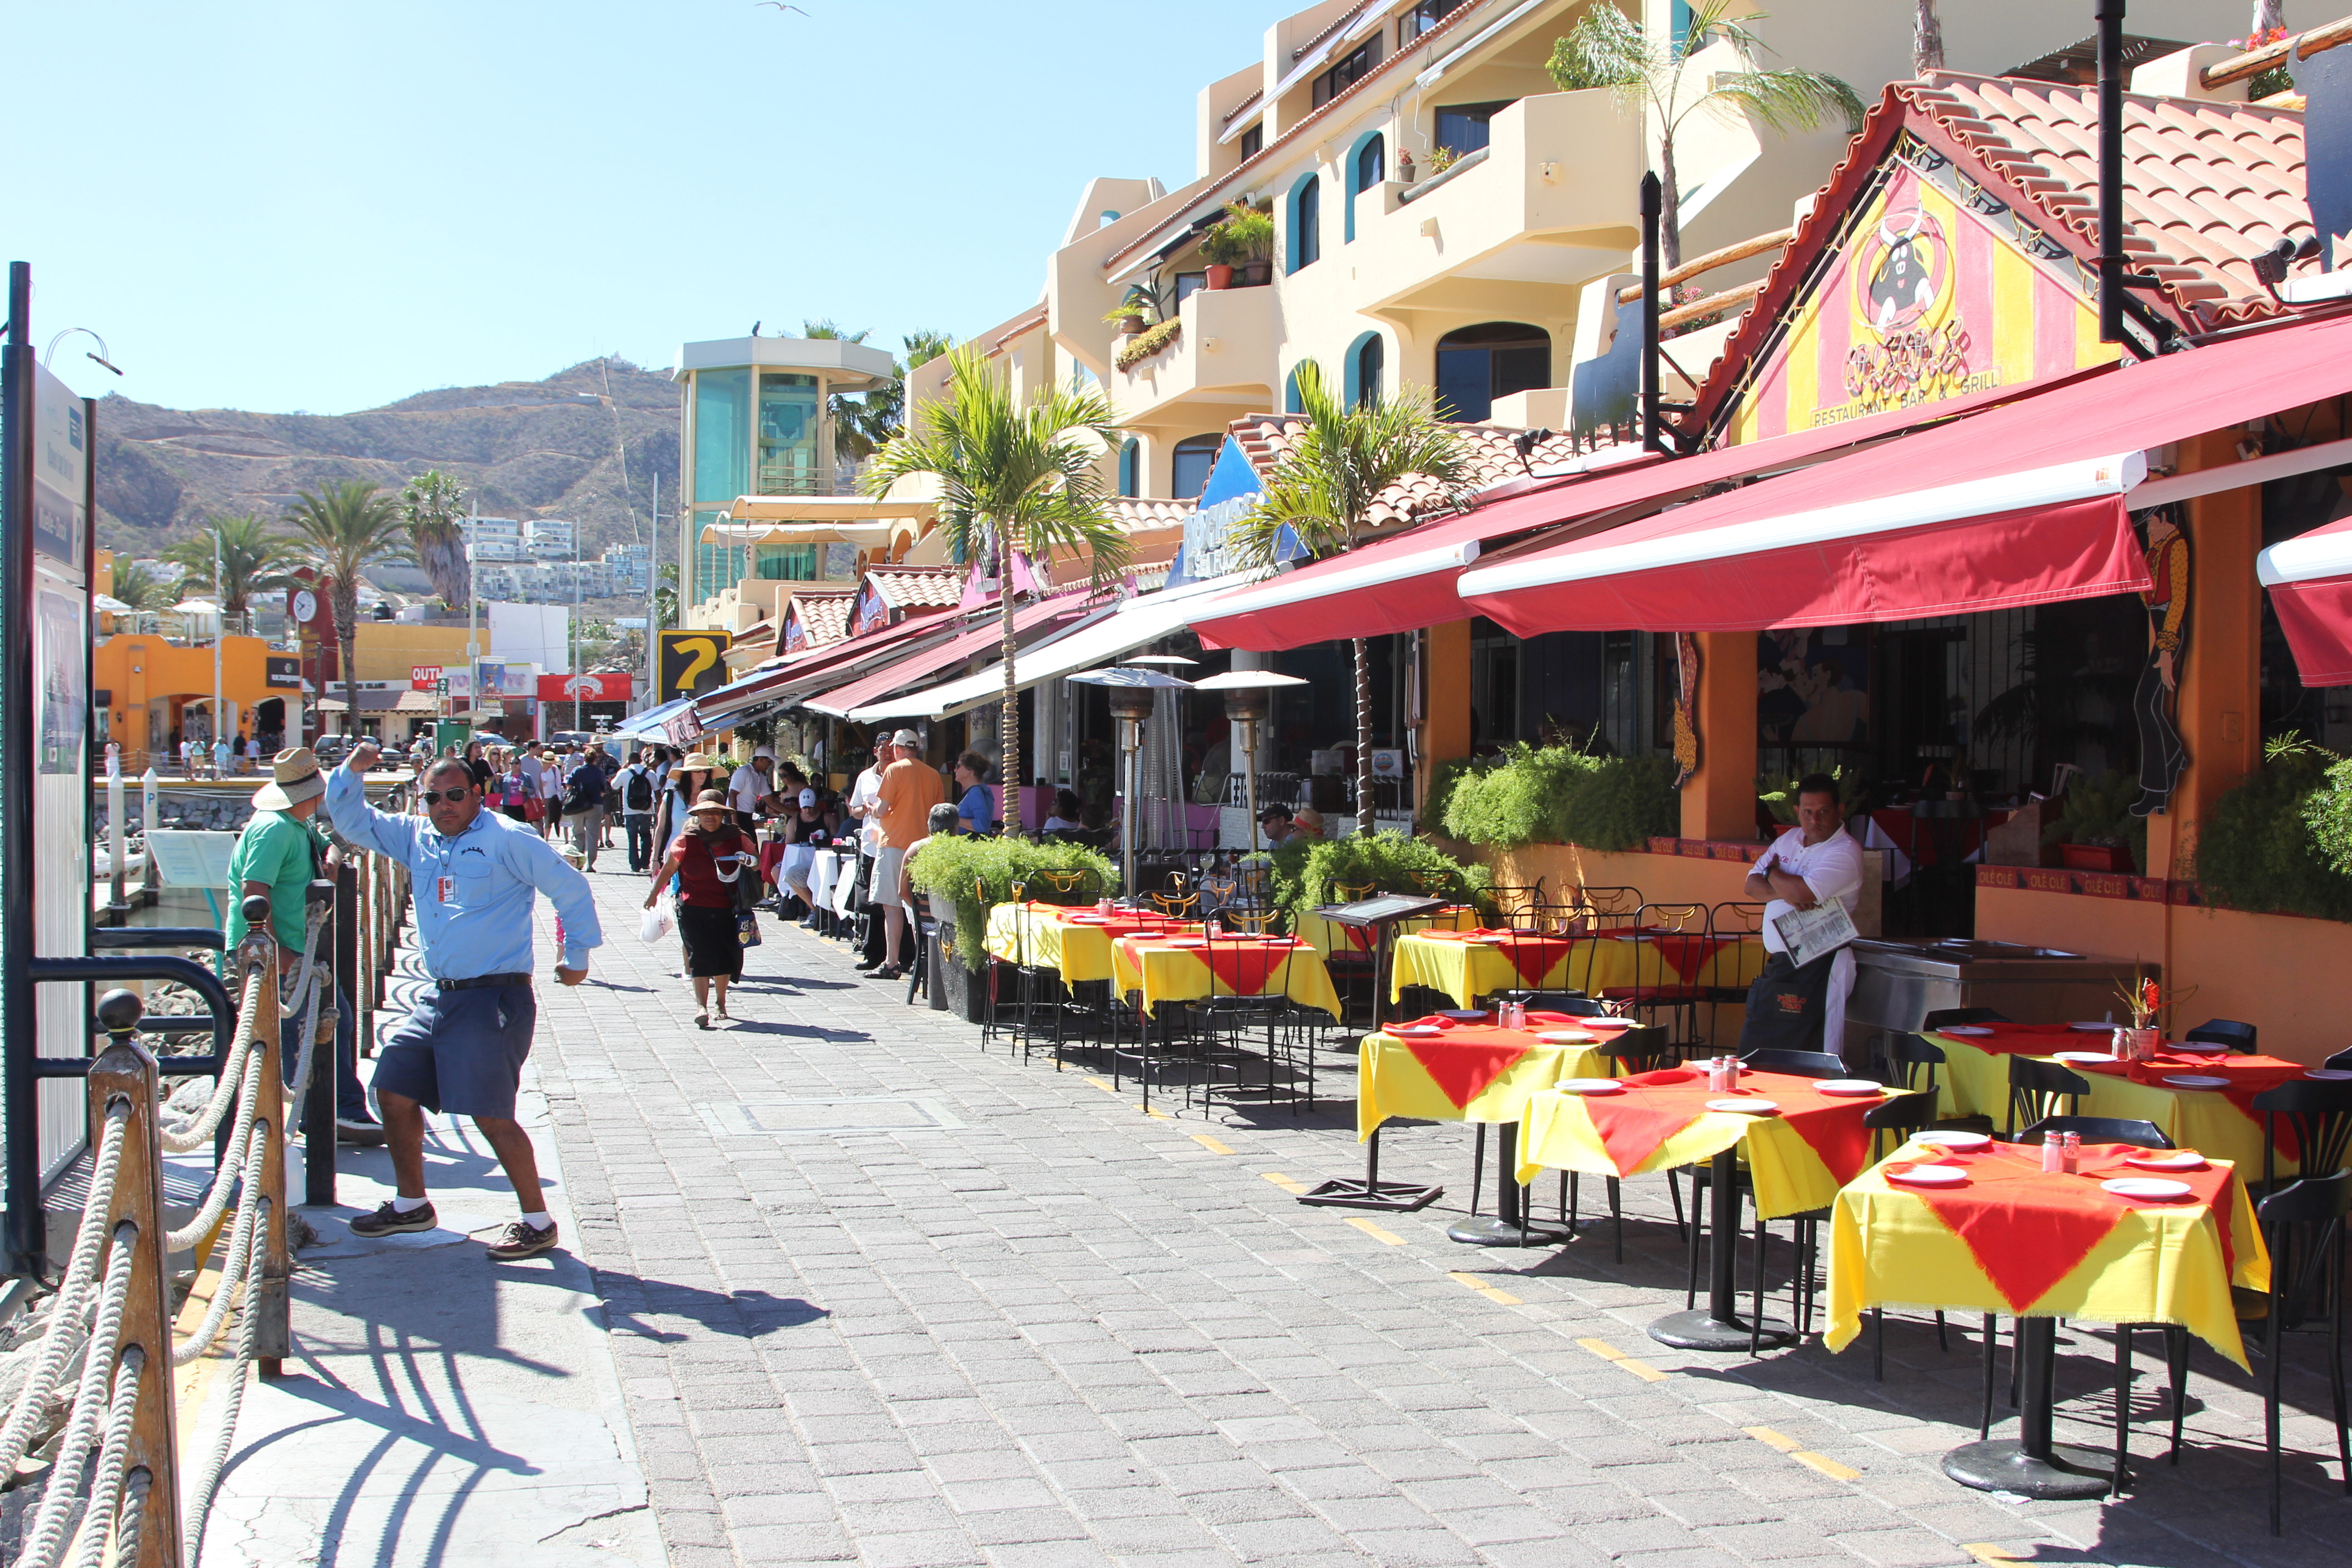 Mexico Urges Travellers To Keep Their Vacation Plans